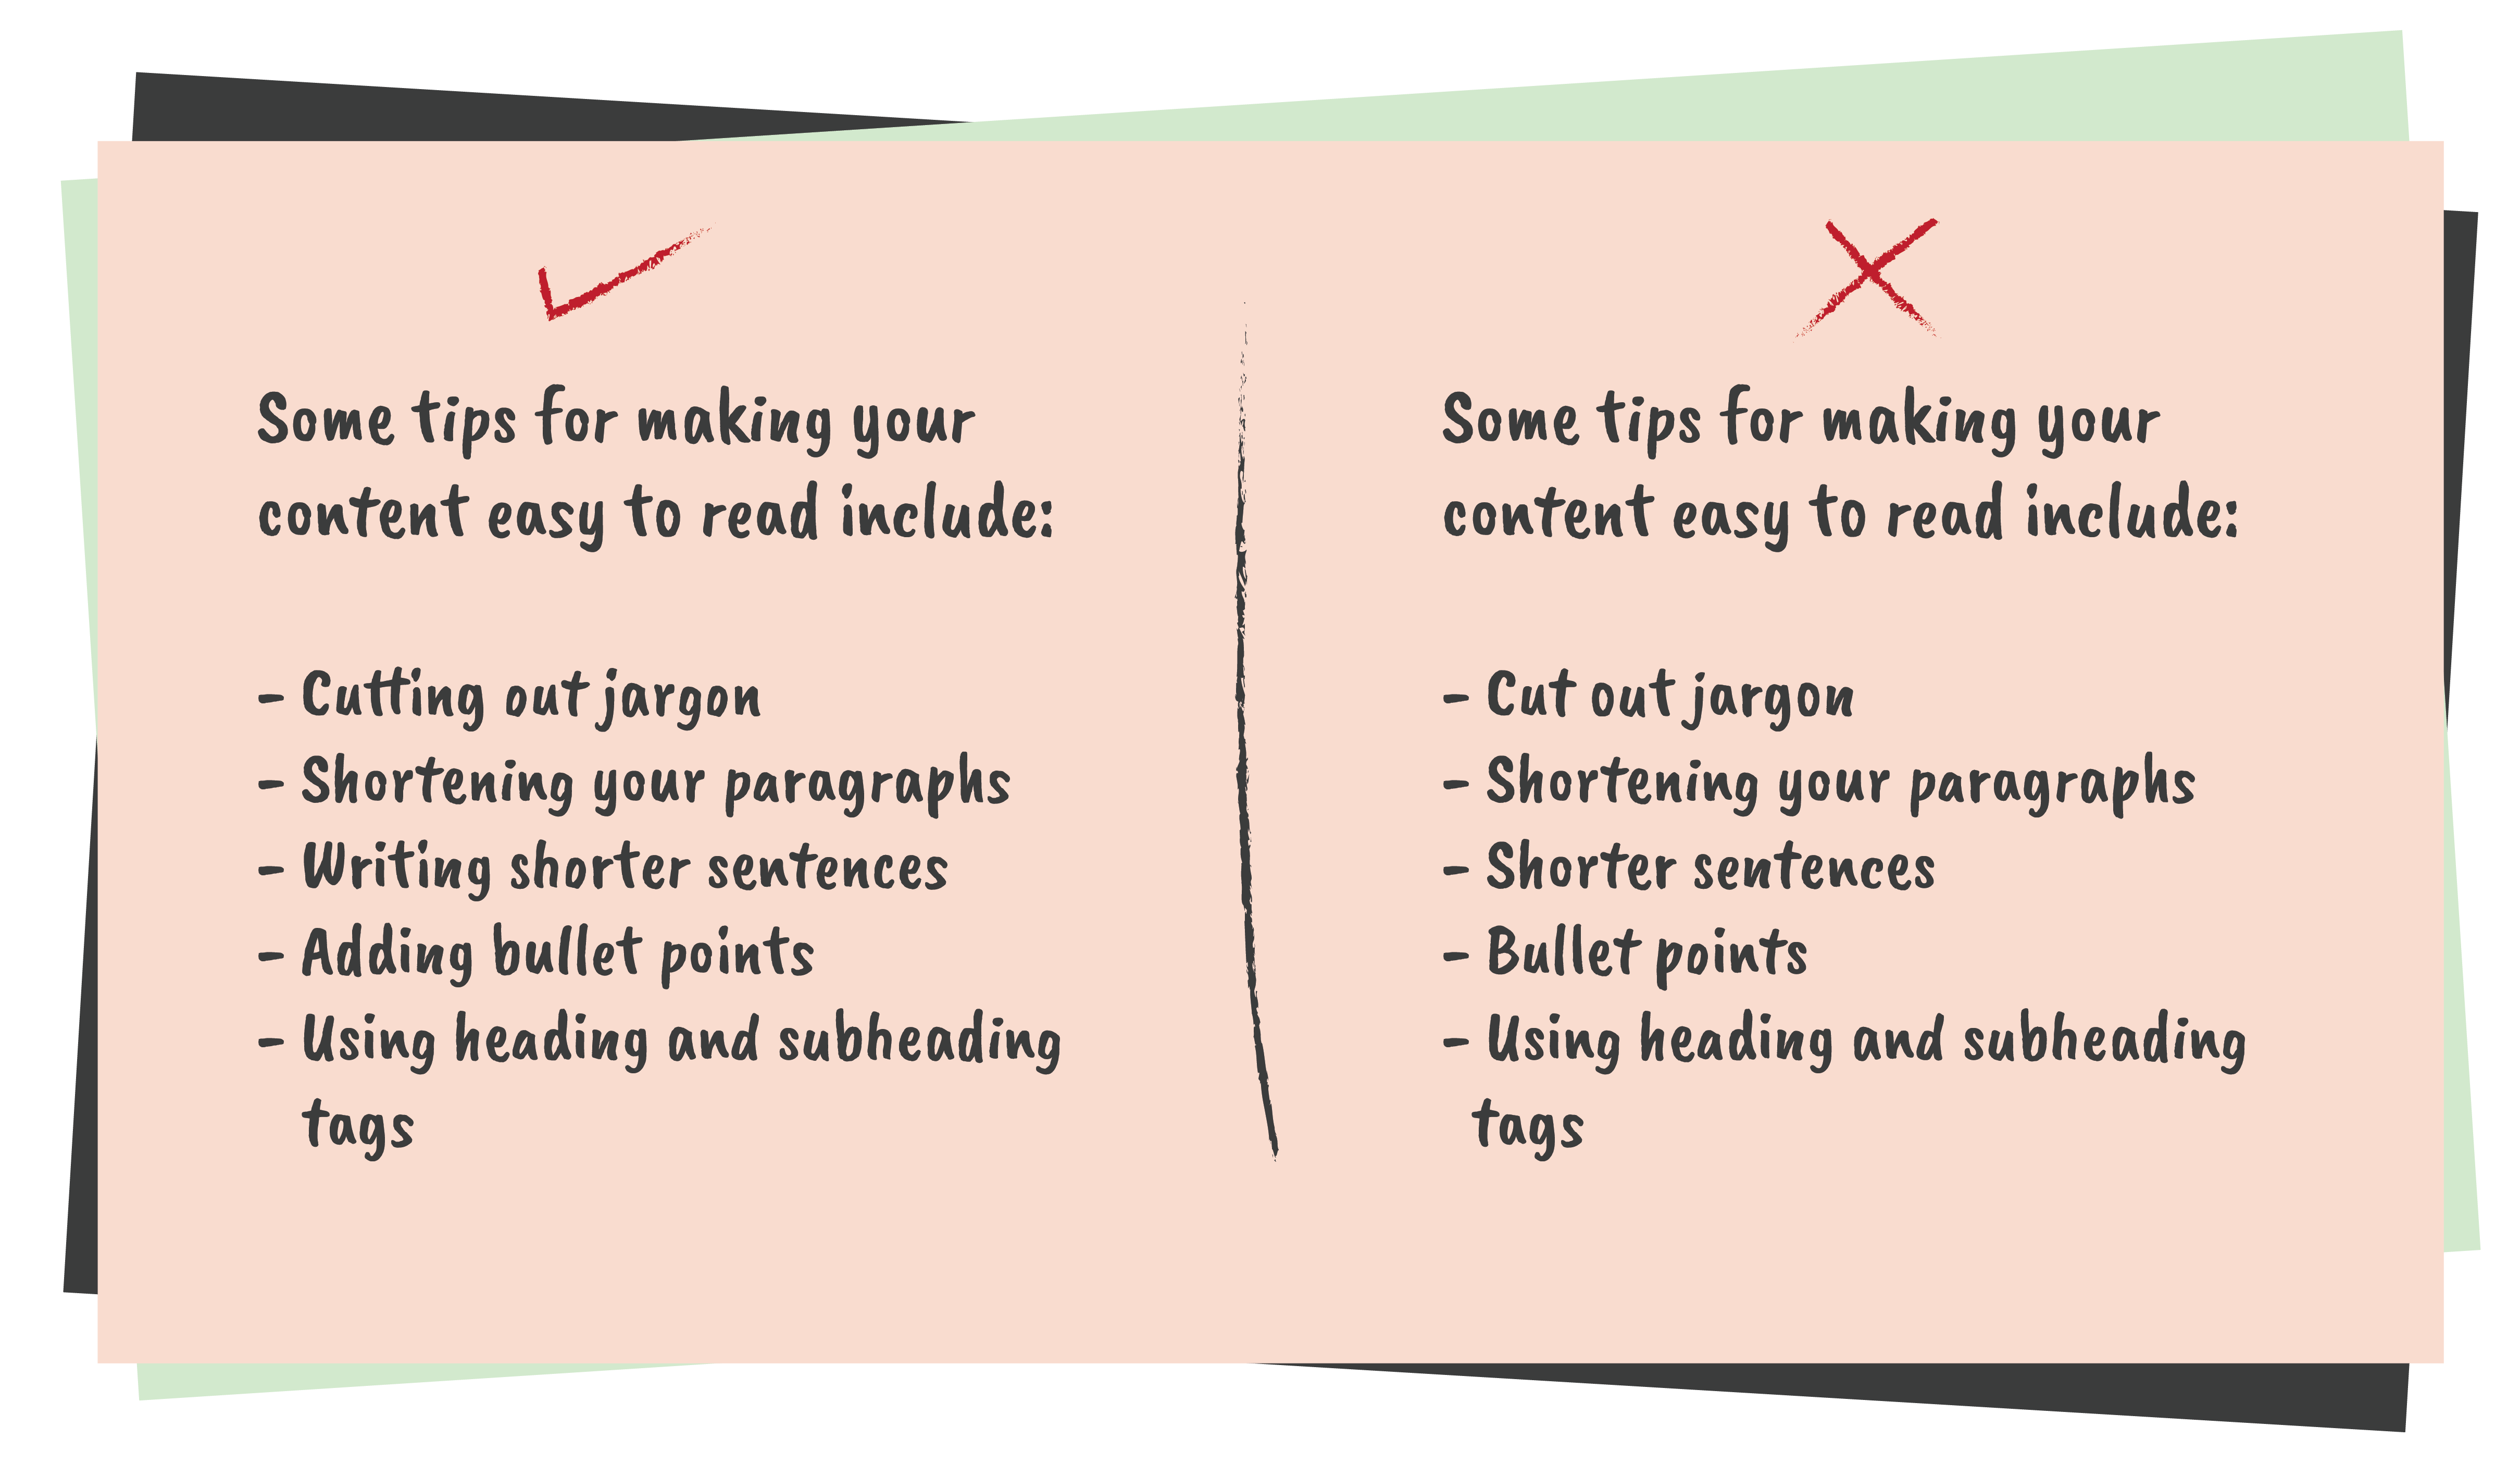 Bullet points - How to edit your writing